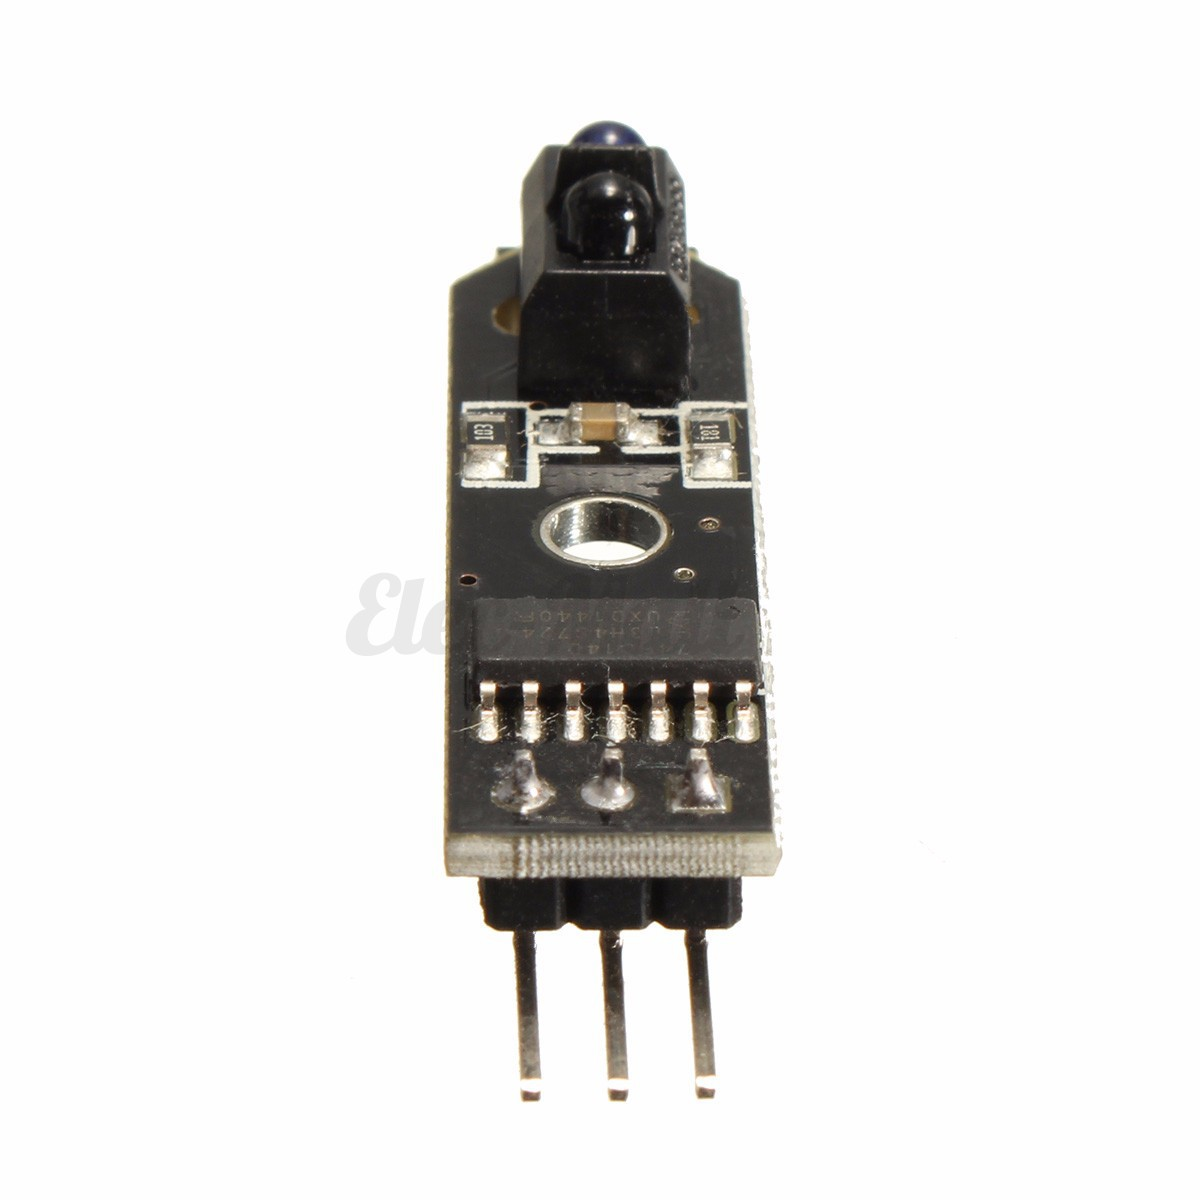 Ir obstacle avoidance tracking sensor infrared module